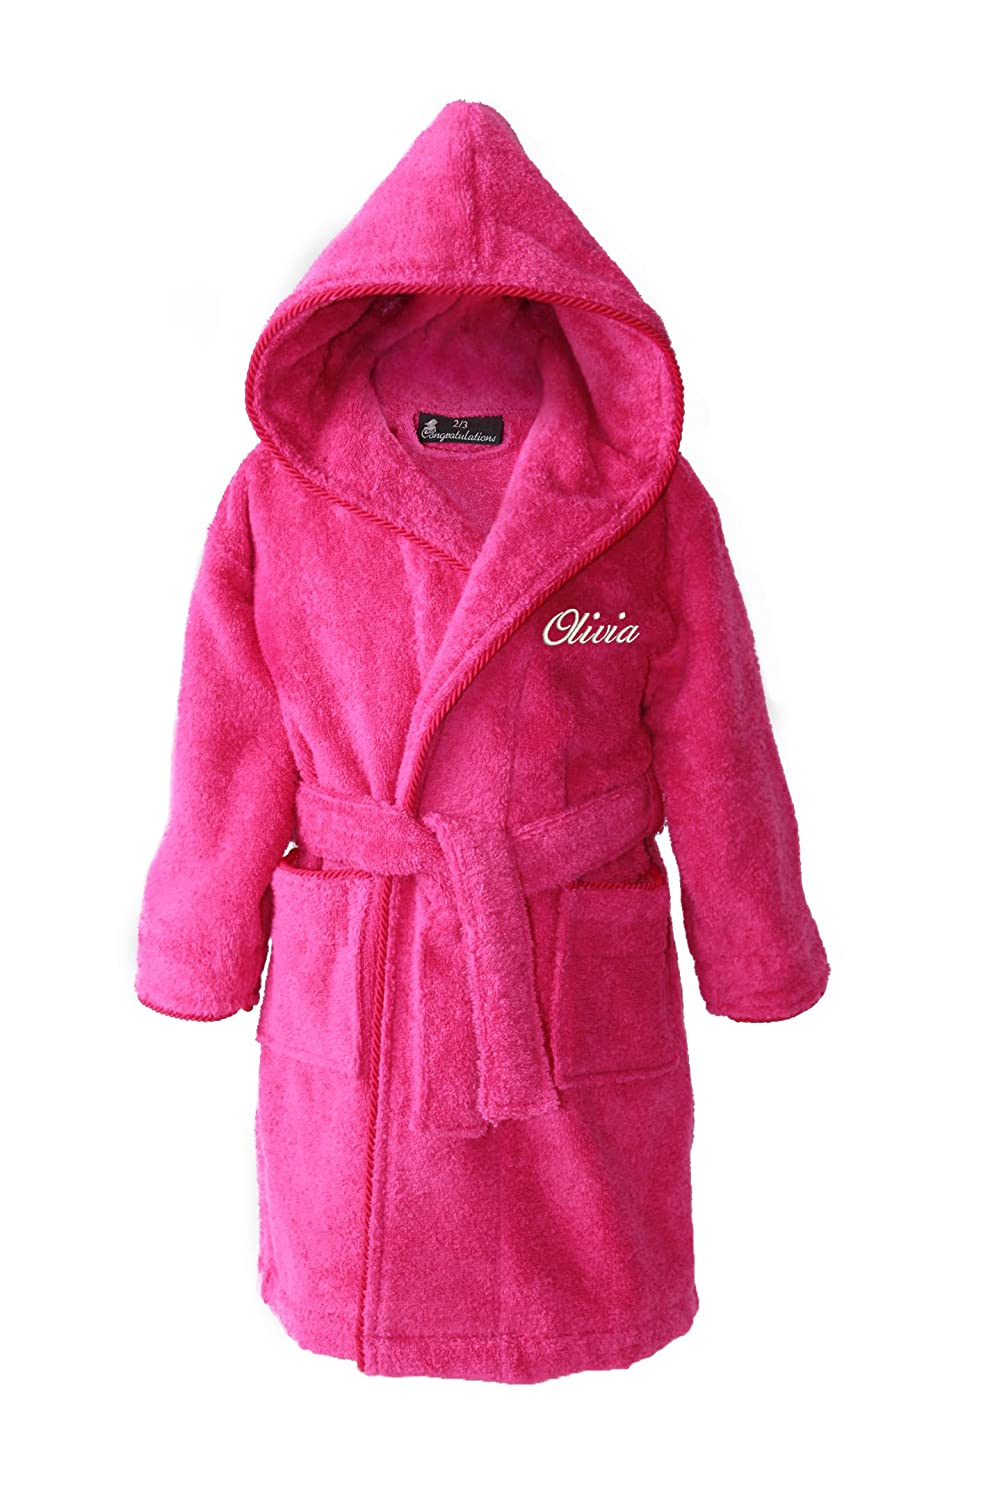 Harlequin Designs Personalised Children's Hooded Toweling Bathrobe - Hot Pink - Ages 2 to 12